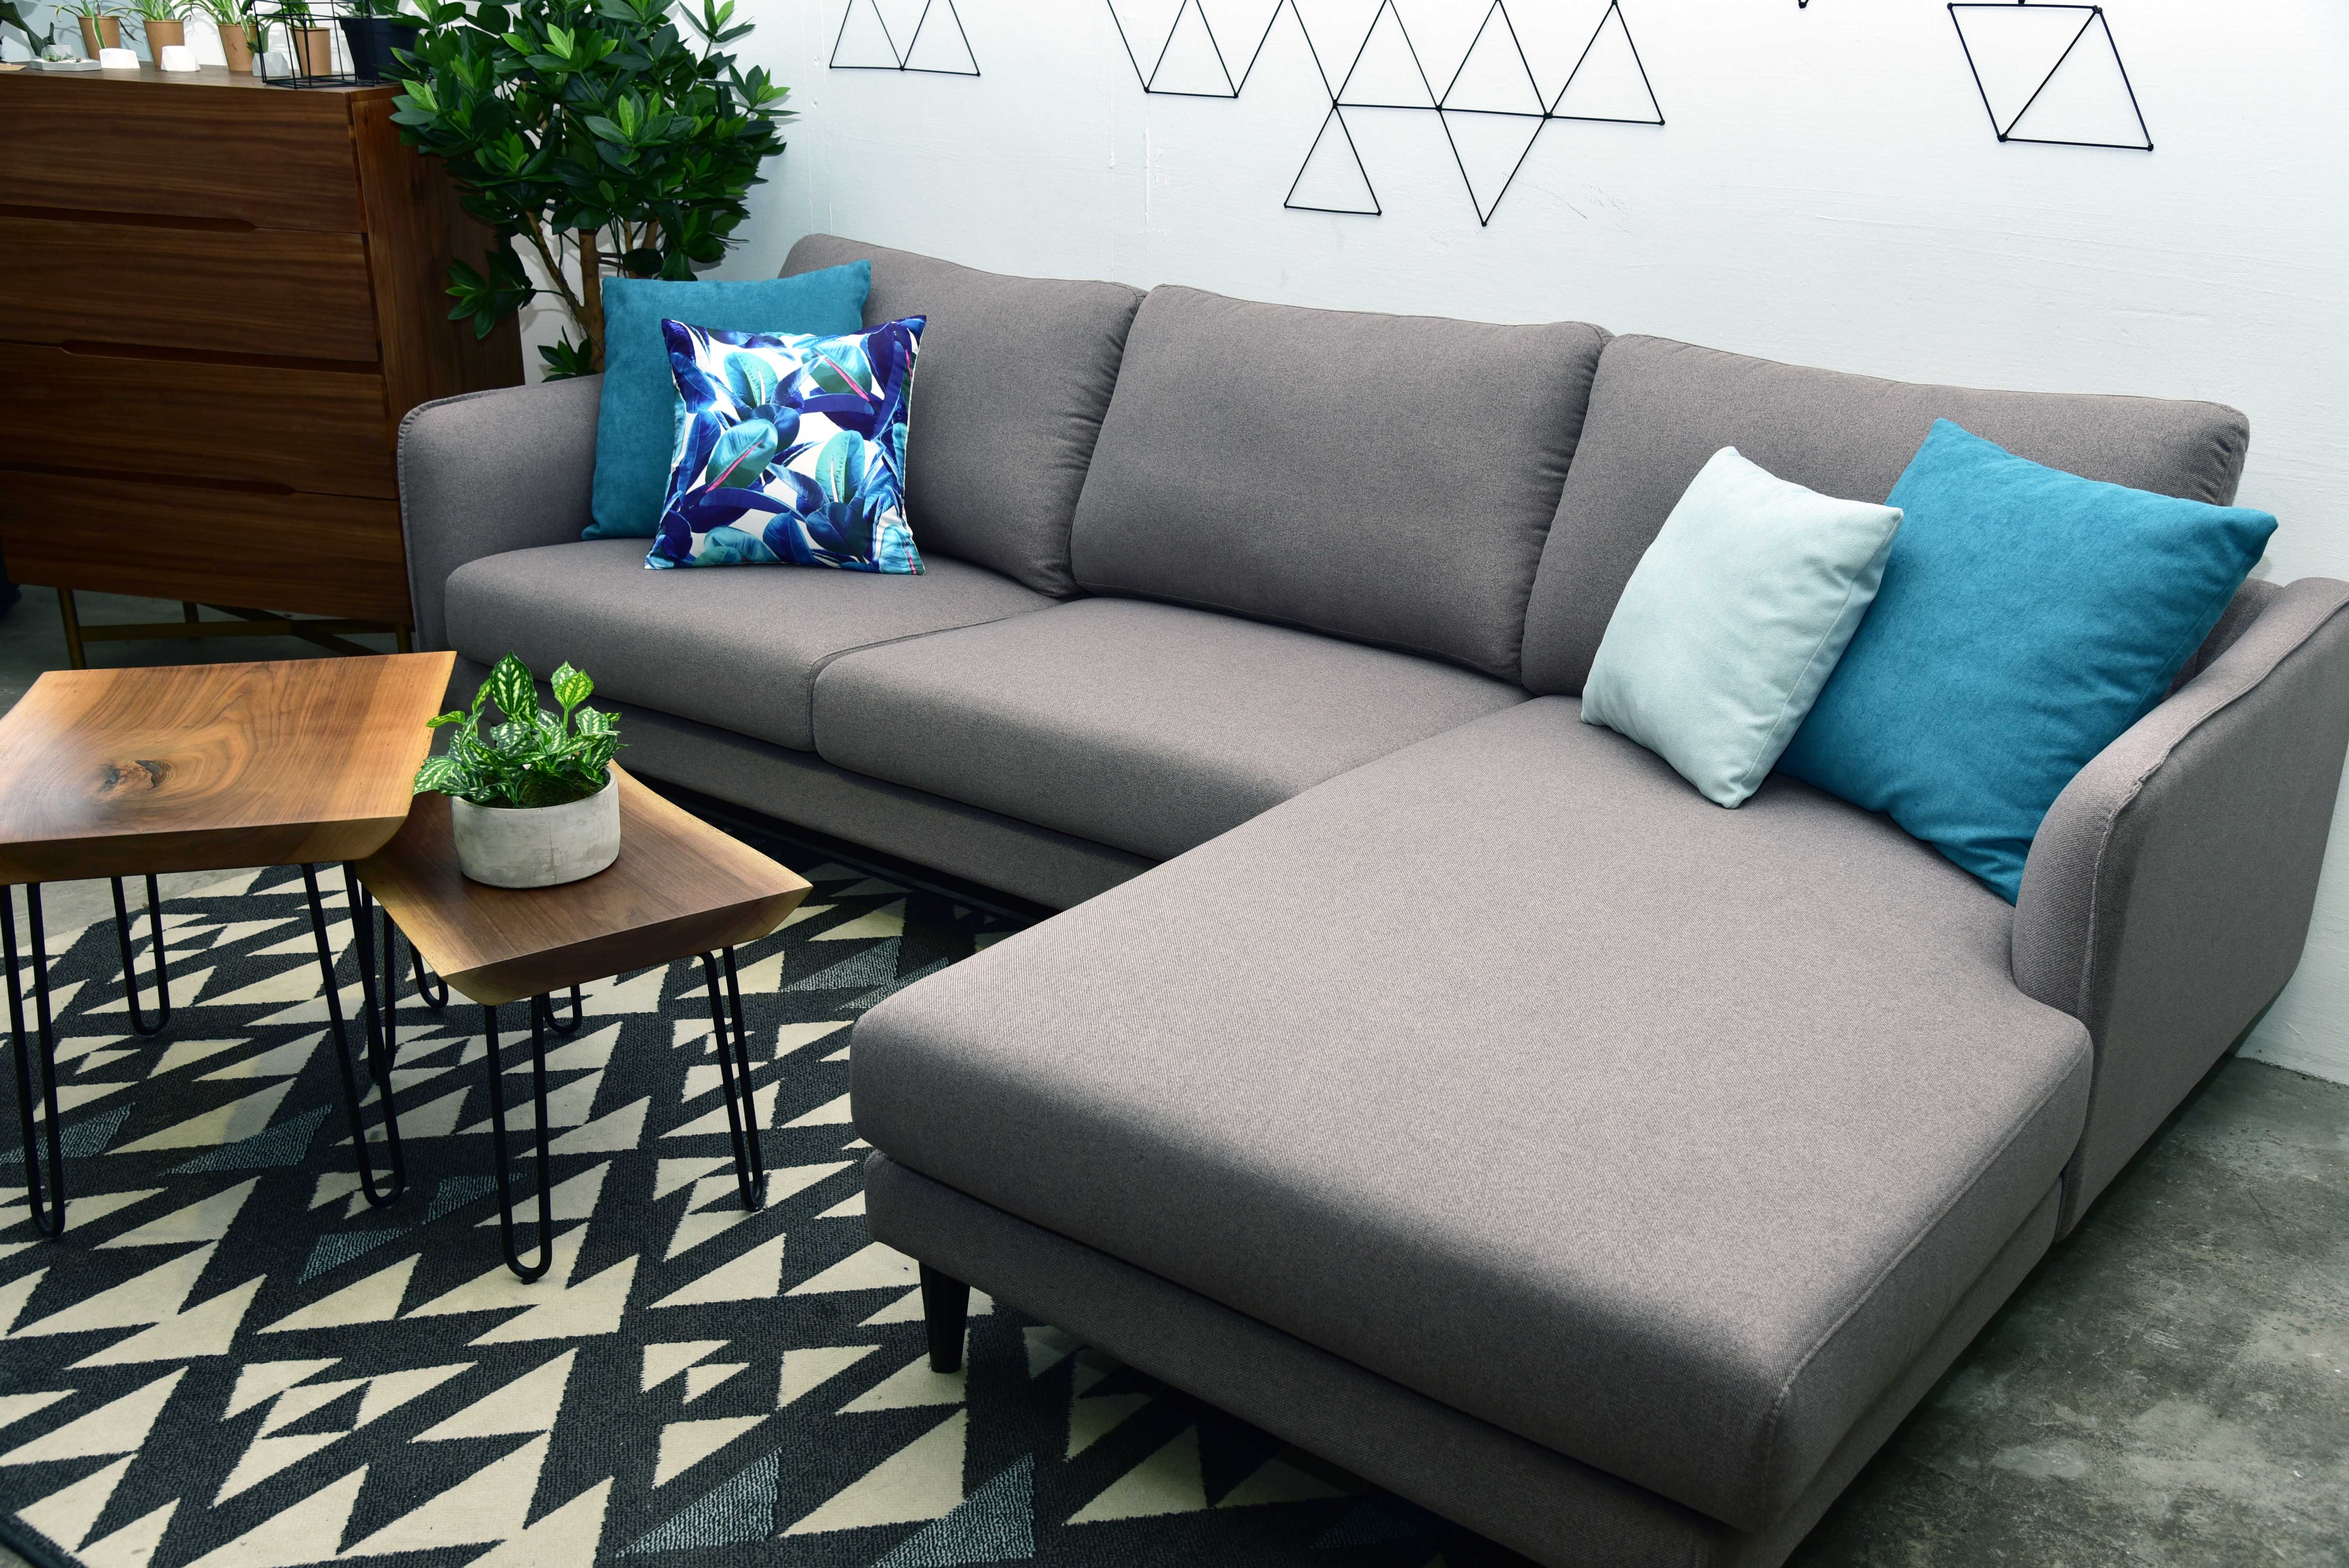 Handy Tips for Cleaning Fabric Sofas